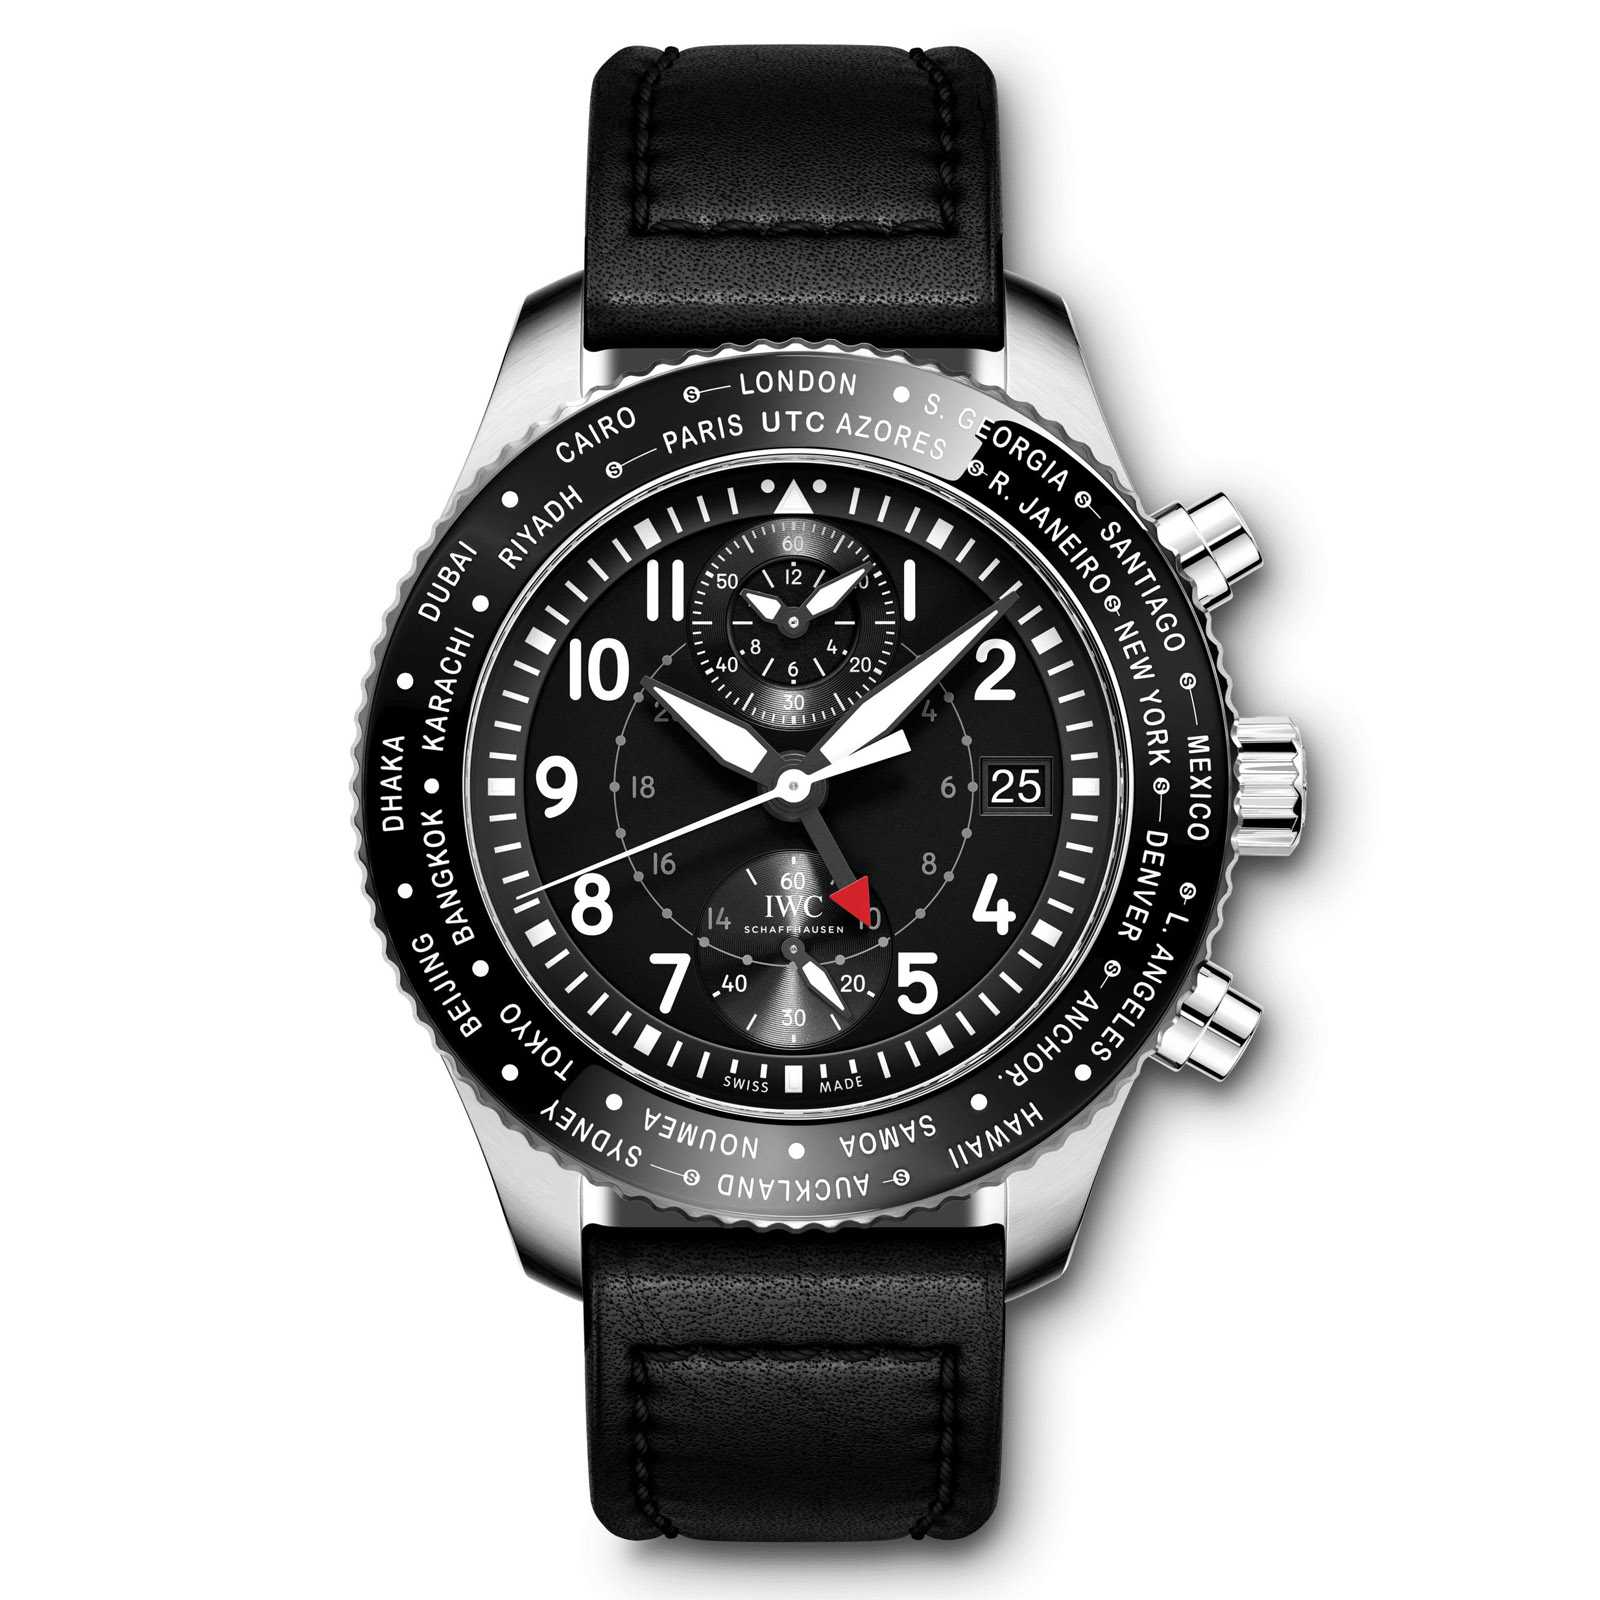 IWC Pilot's Watch Timezoner Chronograph Watch